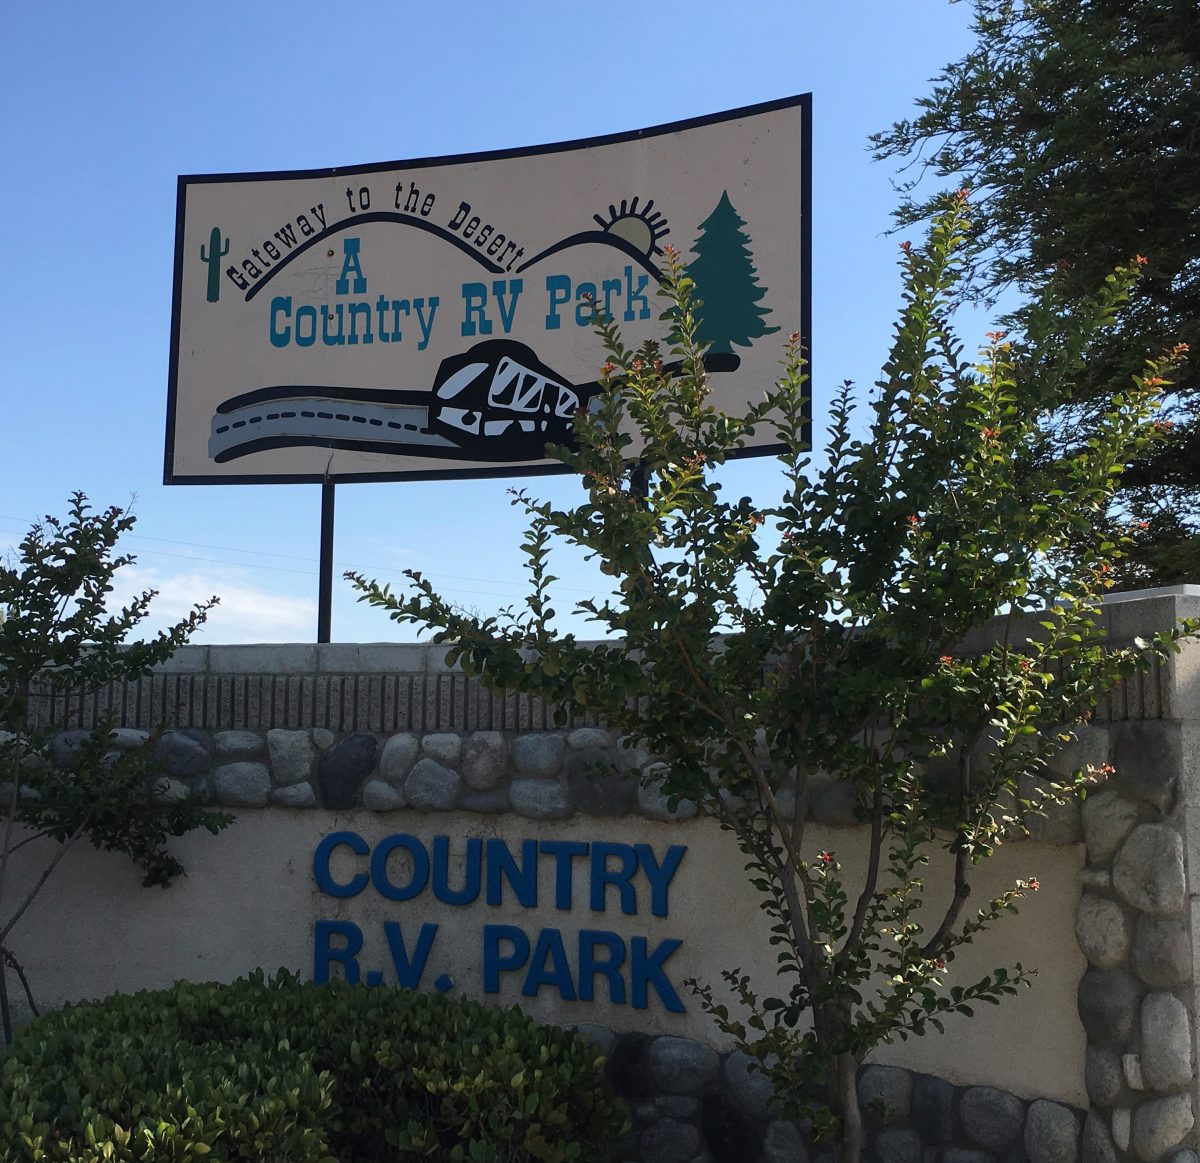 A Country RV Park - entrance sign